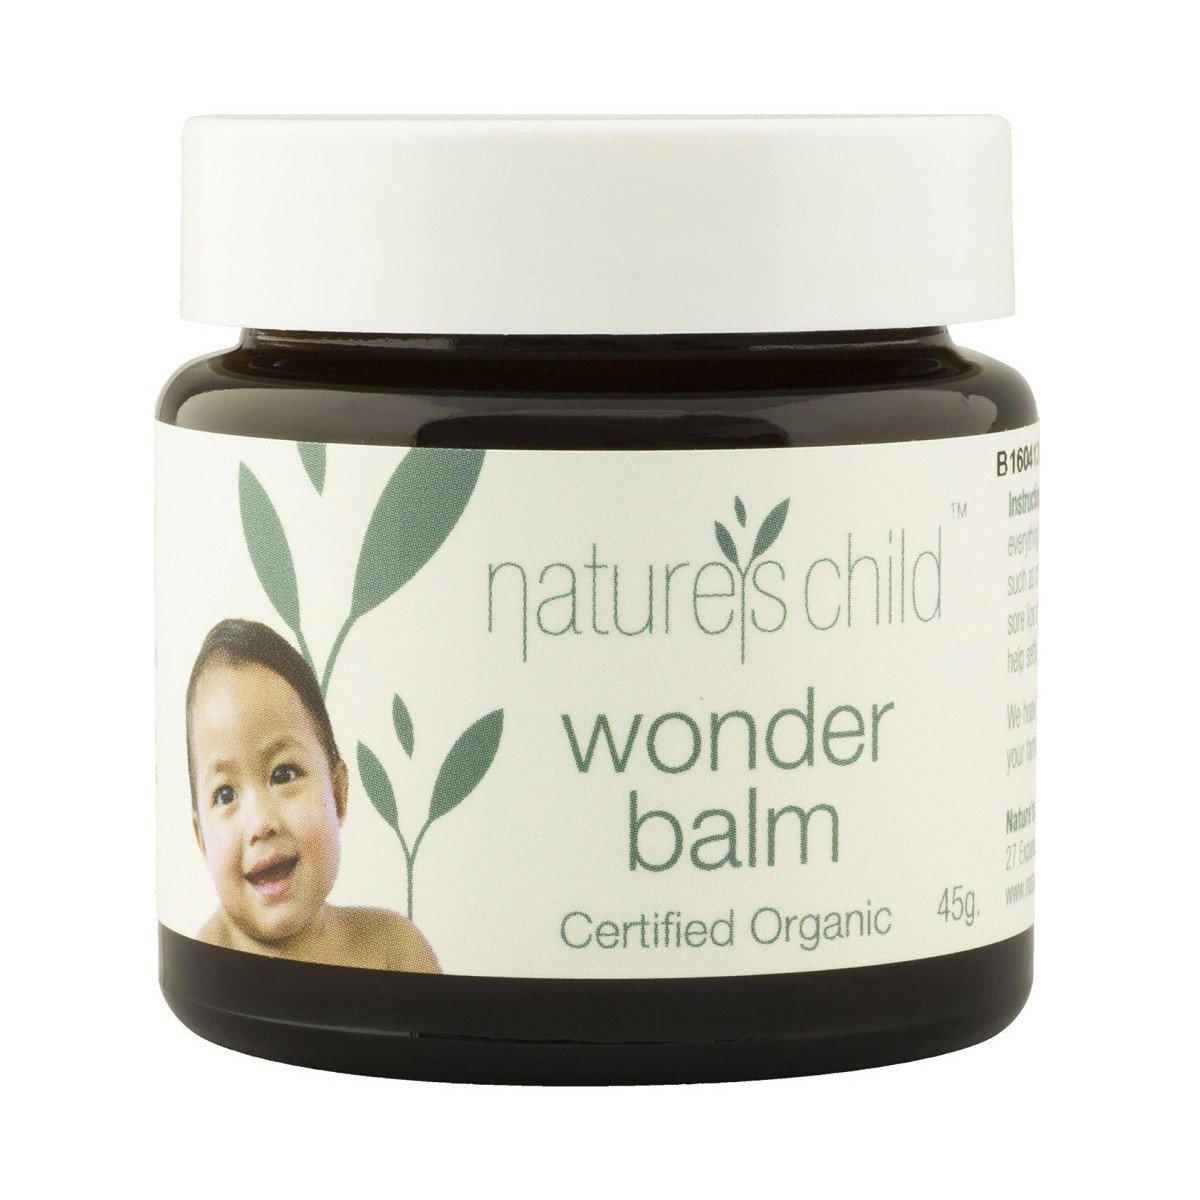 Natures Child Wonder Balm 45g   - Natures Child - Little Earth Nest - 1